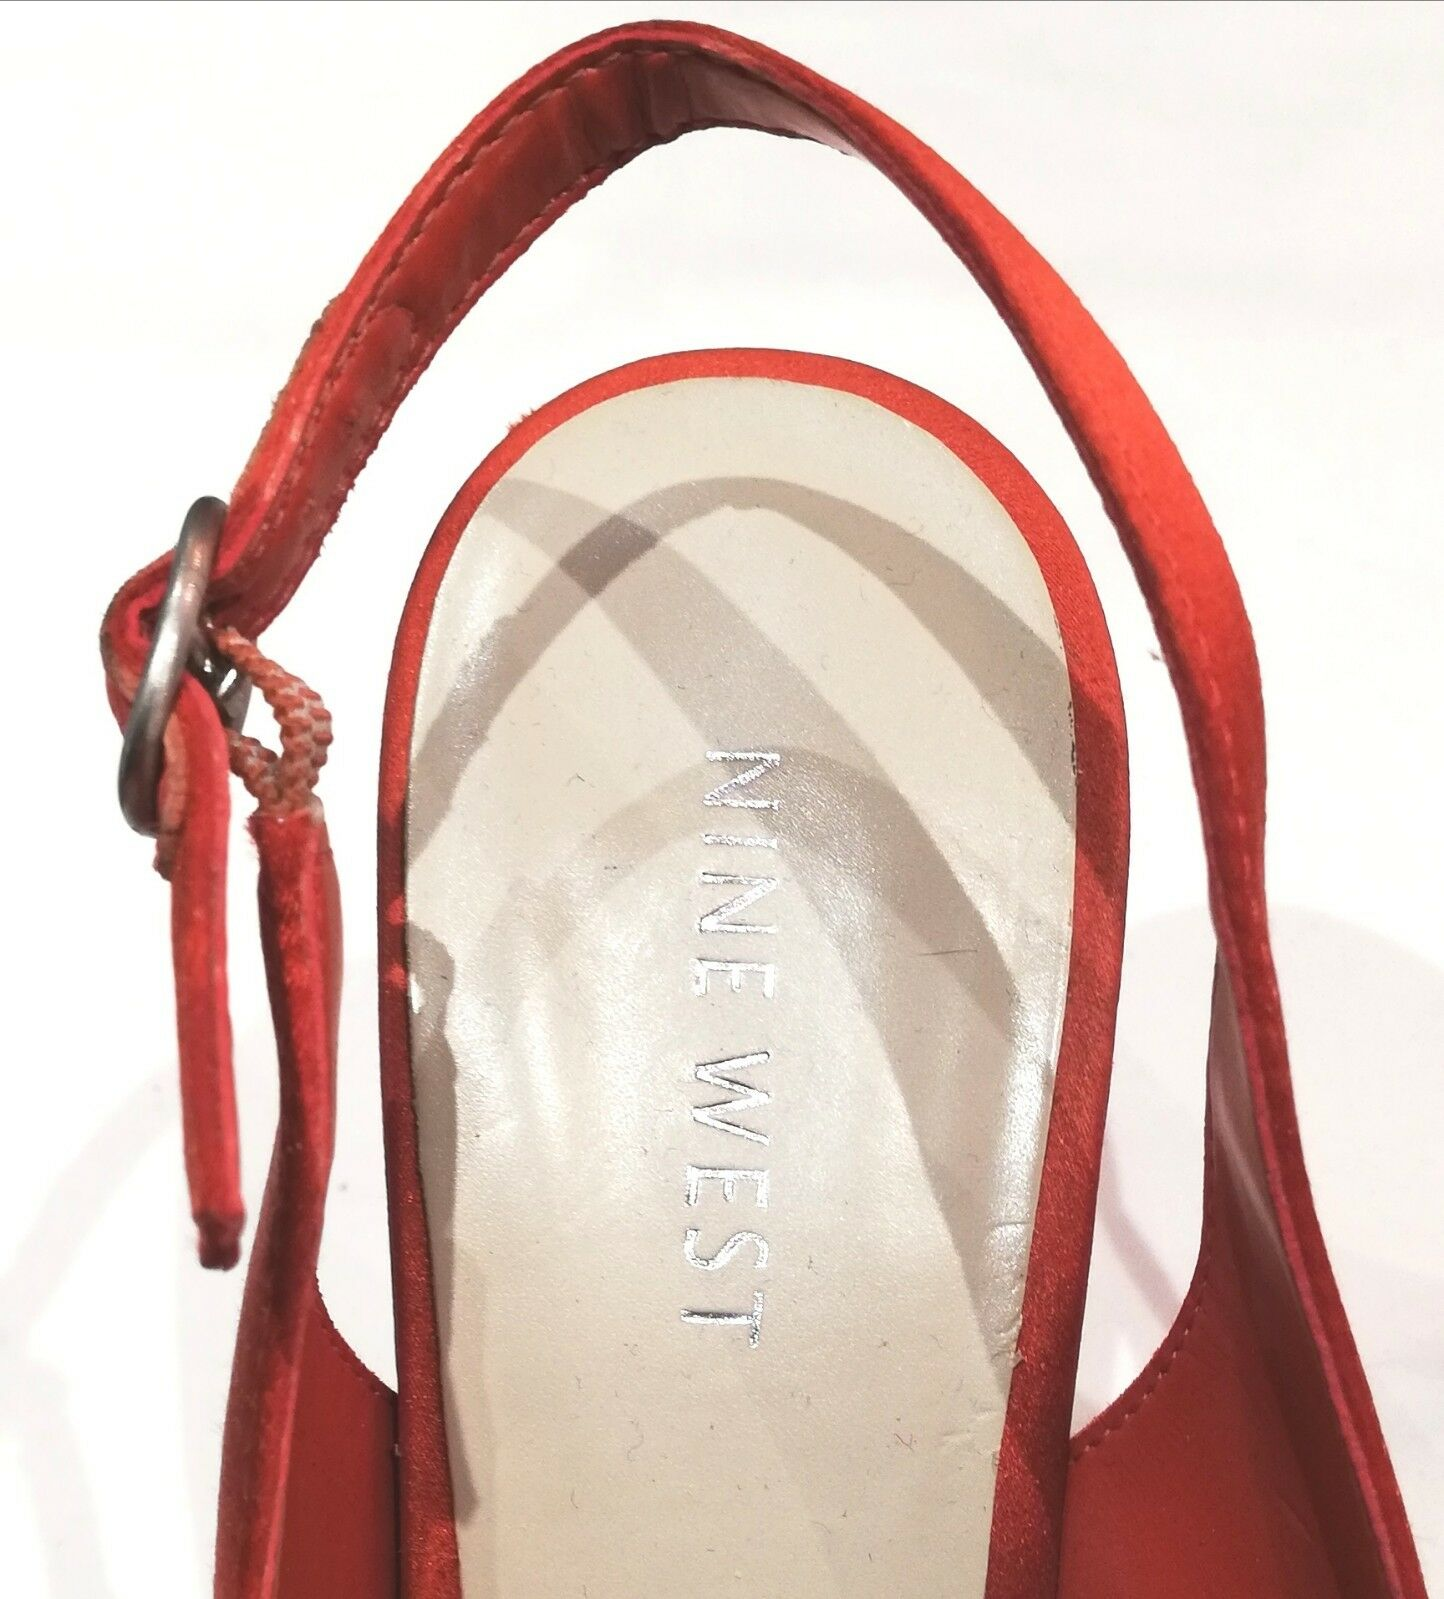 Nine West West West Peep Toes High Heels Orange  Rosa Colour Block Platform Größe 7.5US 6UK c00d03